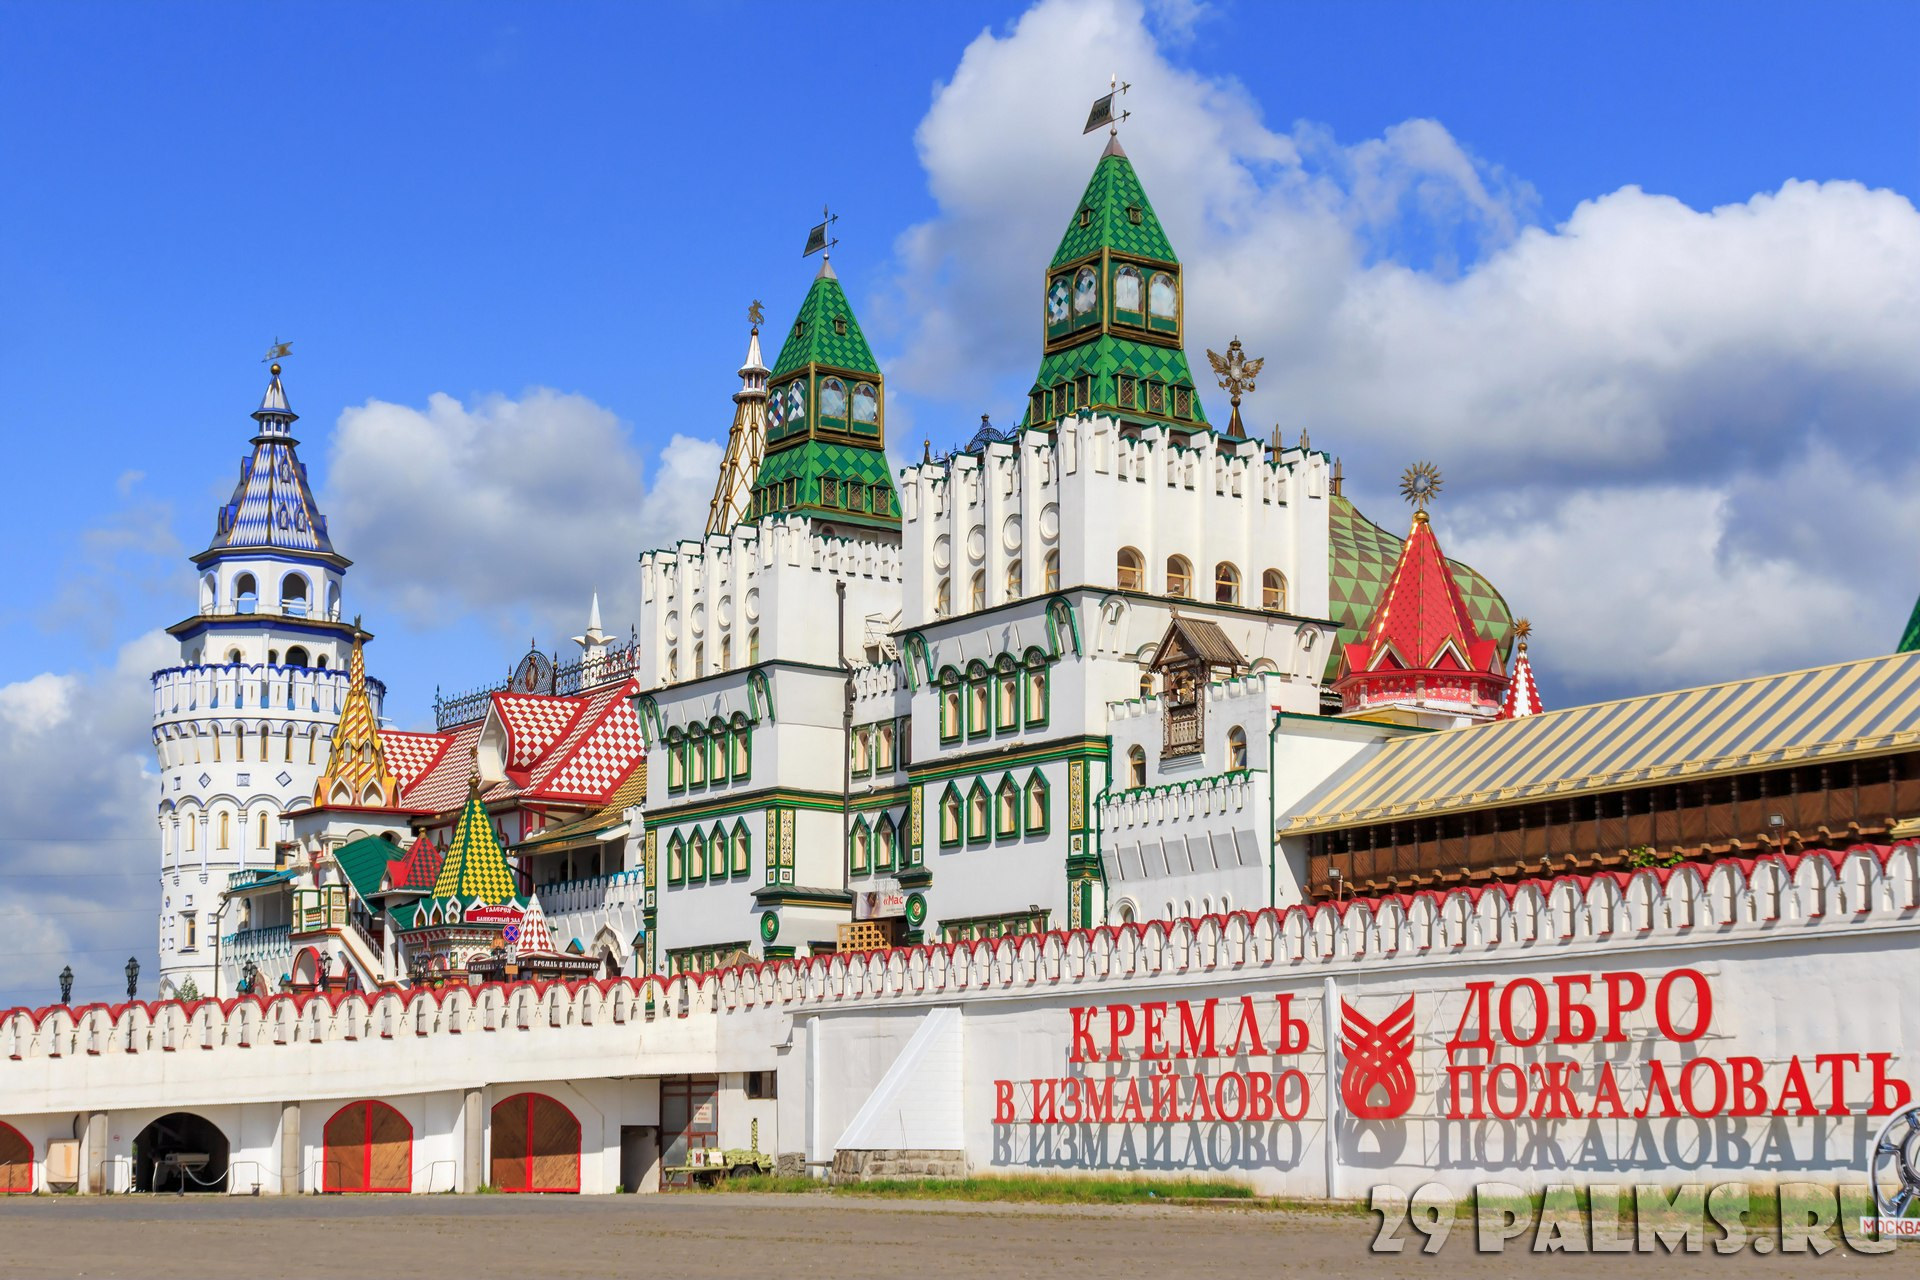 Клуб путешествий Павла Аксенова. Россия. Москва. Кремль в Измайлово. Cultural and entertainment complex Kremlin in Izmailovo in Moscow. Фото BoneKot-D